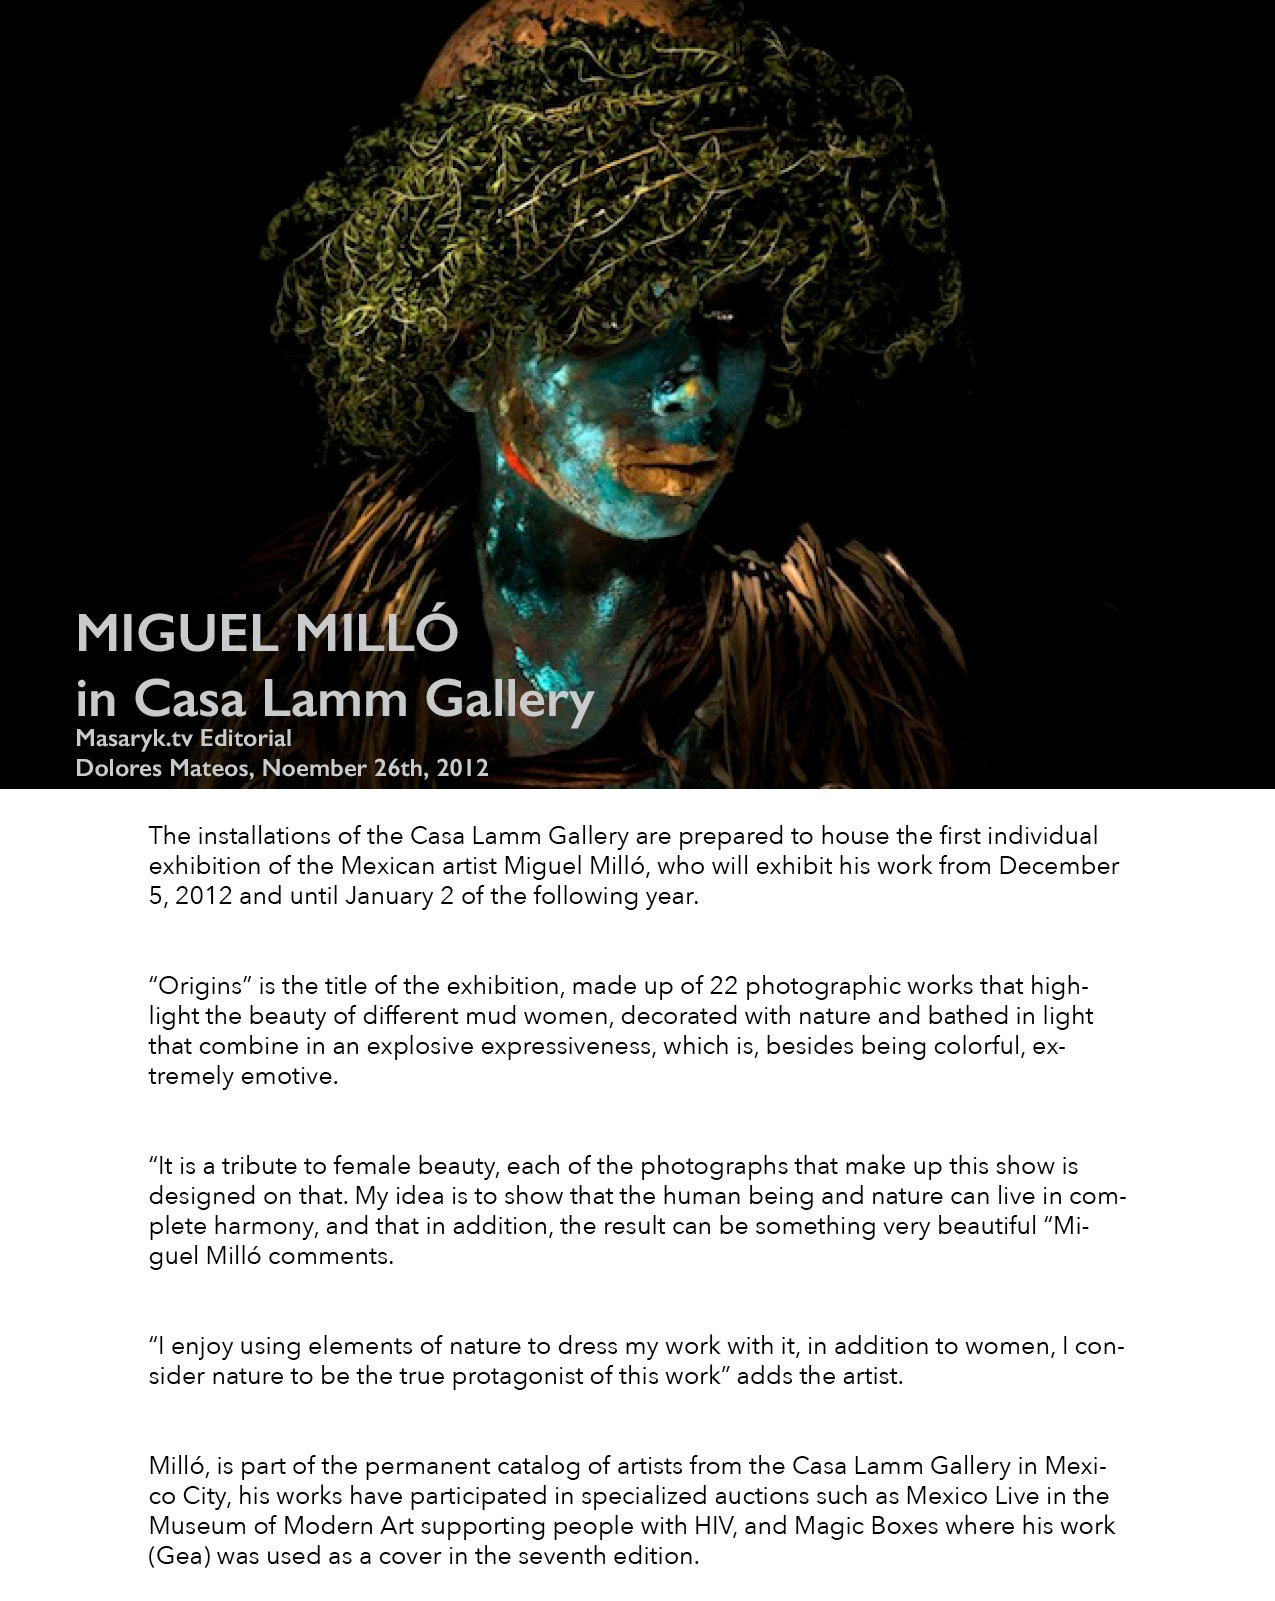 miguel+millo+formatted+article.jpg